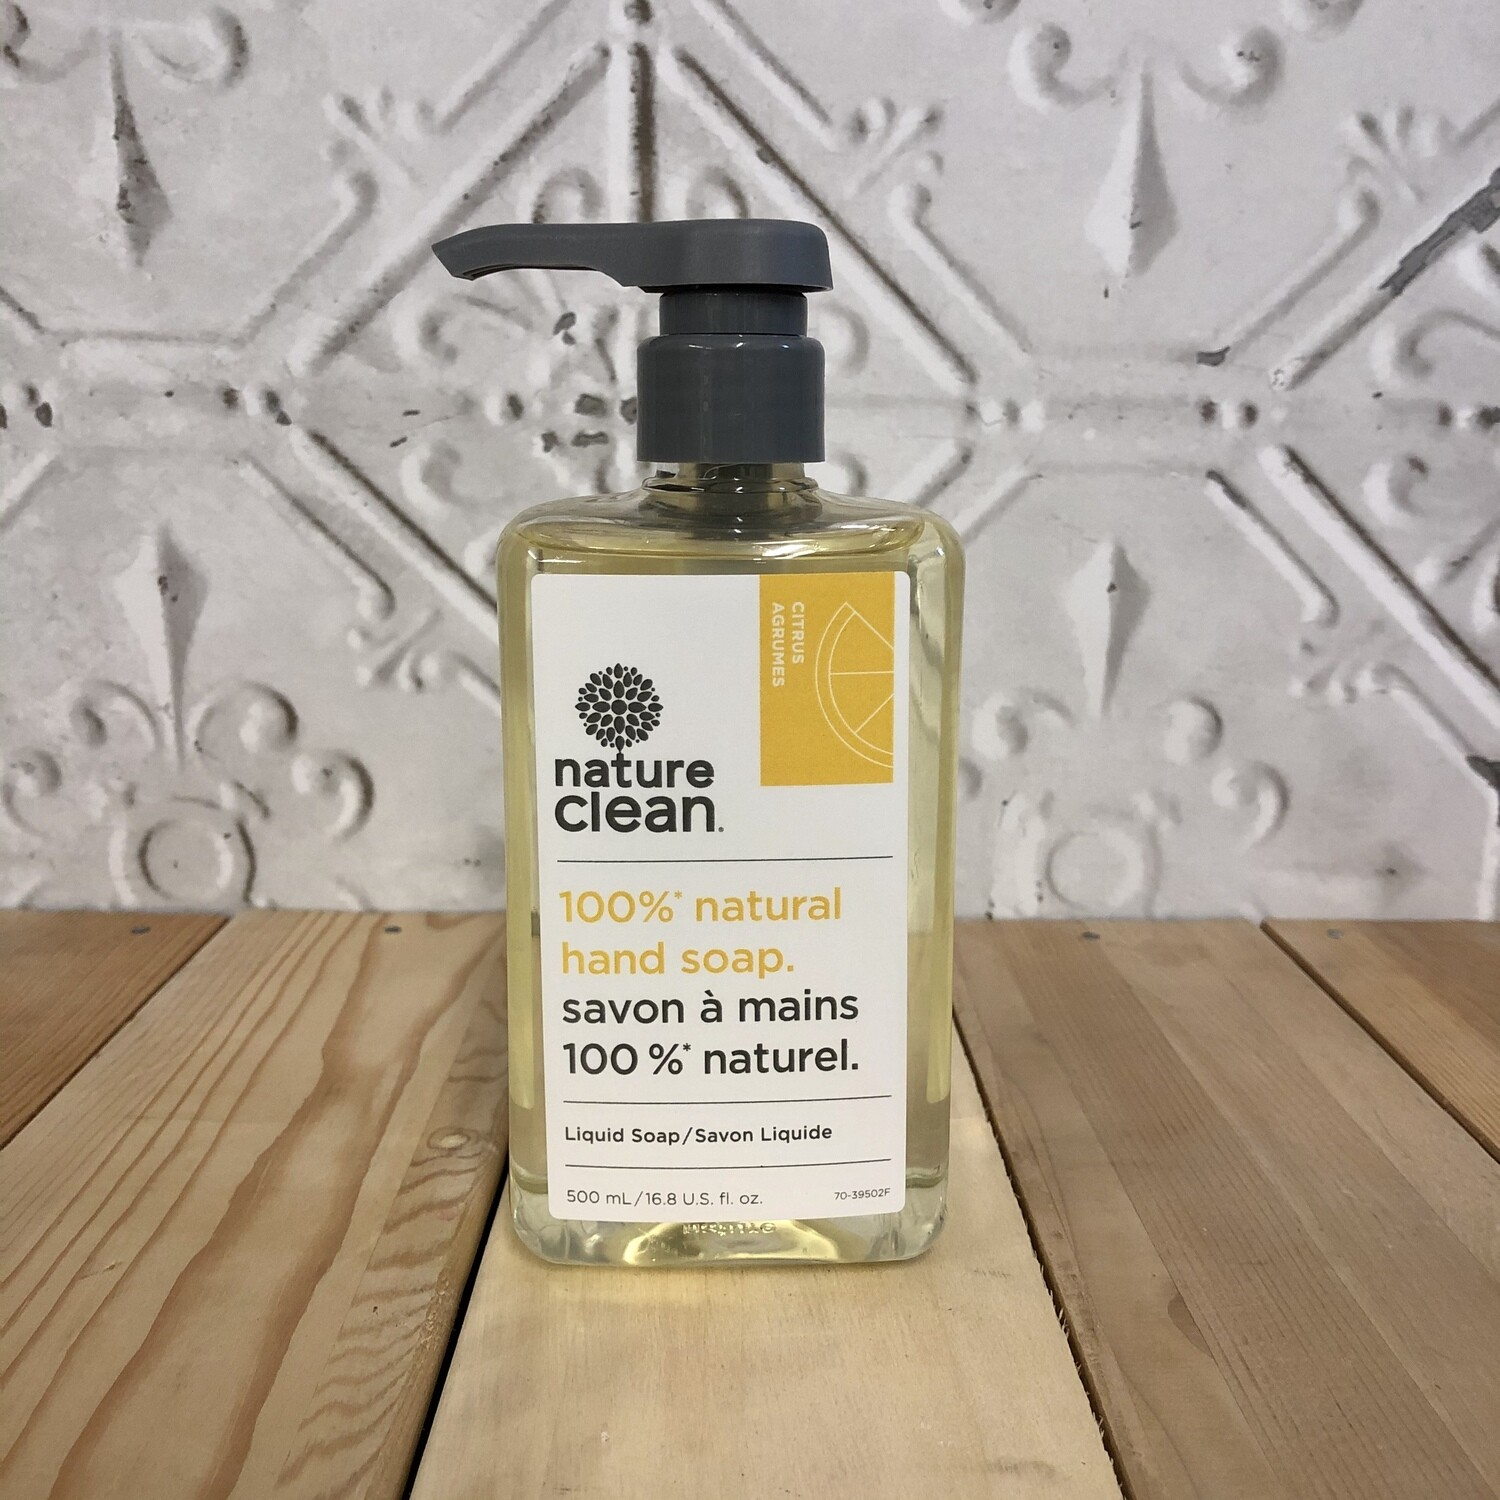 NATURE CLEAN Citrus Liquid Hand Soap 500ml